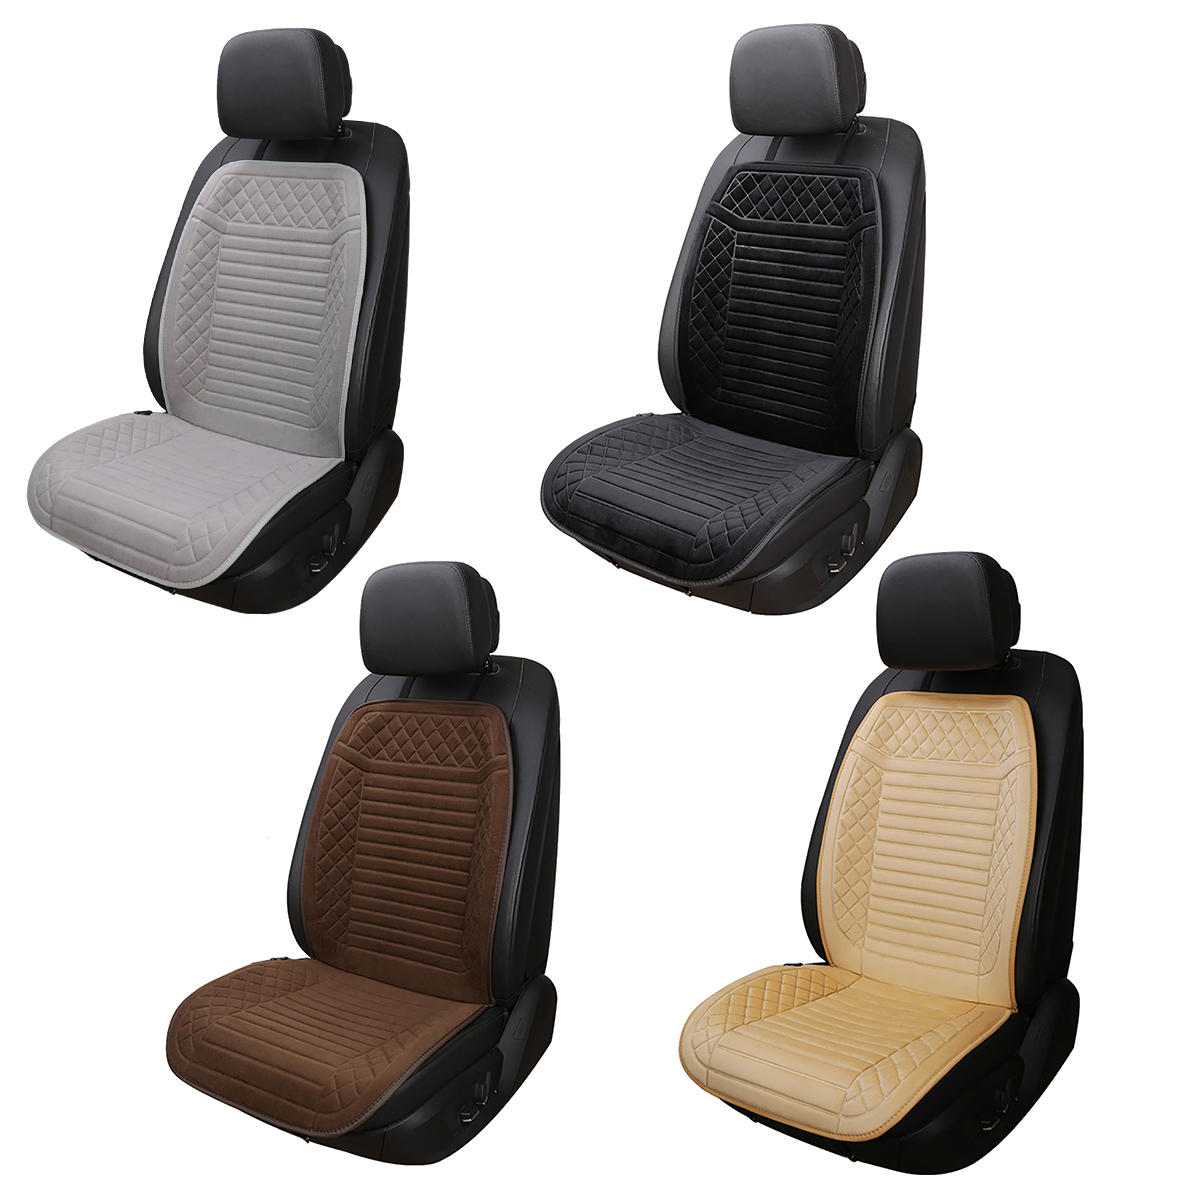 12V Electric Heated Car Front Seat Cover Pad Thermal Warmer Cushion Universal